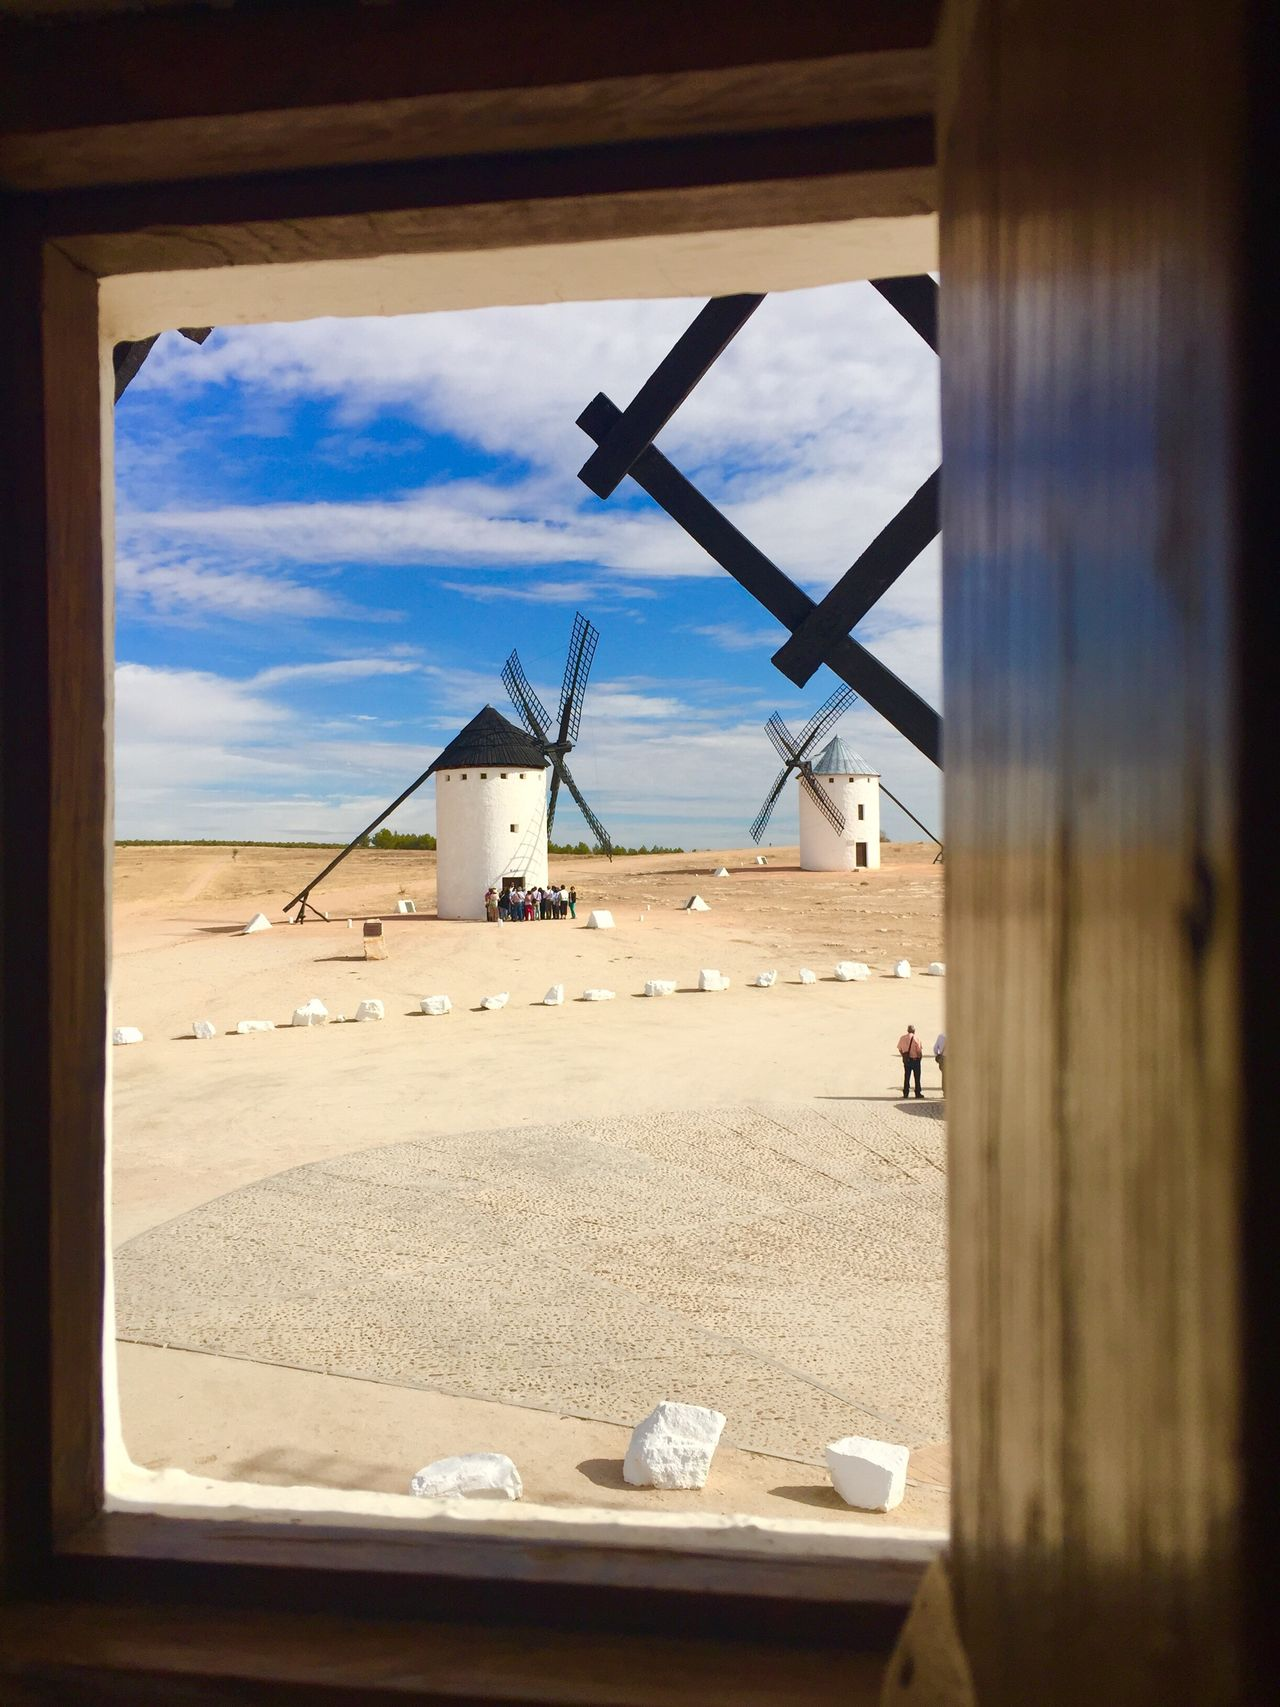 spain Windmill Wind Turbine Wind Power Alternative Energy Environmental Conservation Built Structure Sky Renewable Energy Architecture Fuel And Power Generation Rural Scene Cloud - Sky Building Exterior No People Industrial Windmill Day Nature Indoors  休暇 White Hello World Charming 風車 La Mancha ラマンチャ ドンキホーテ